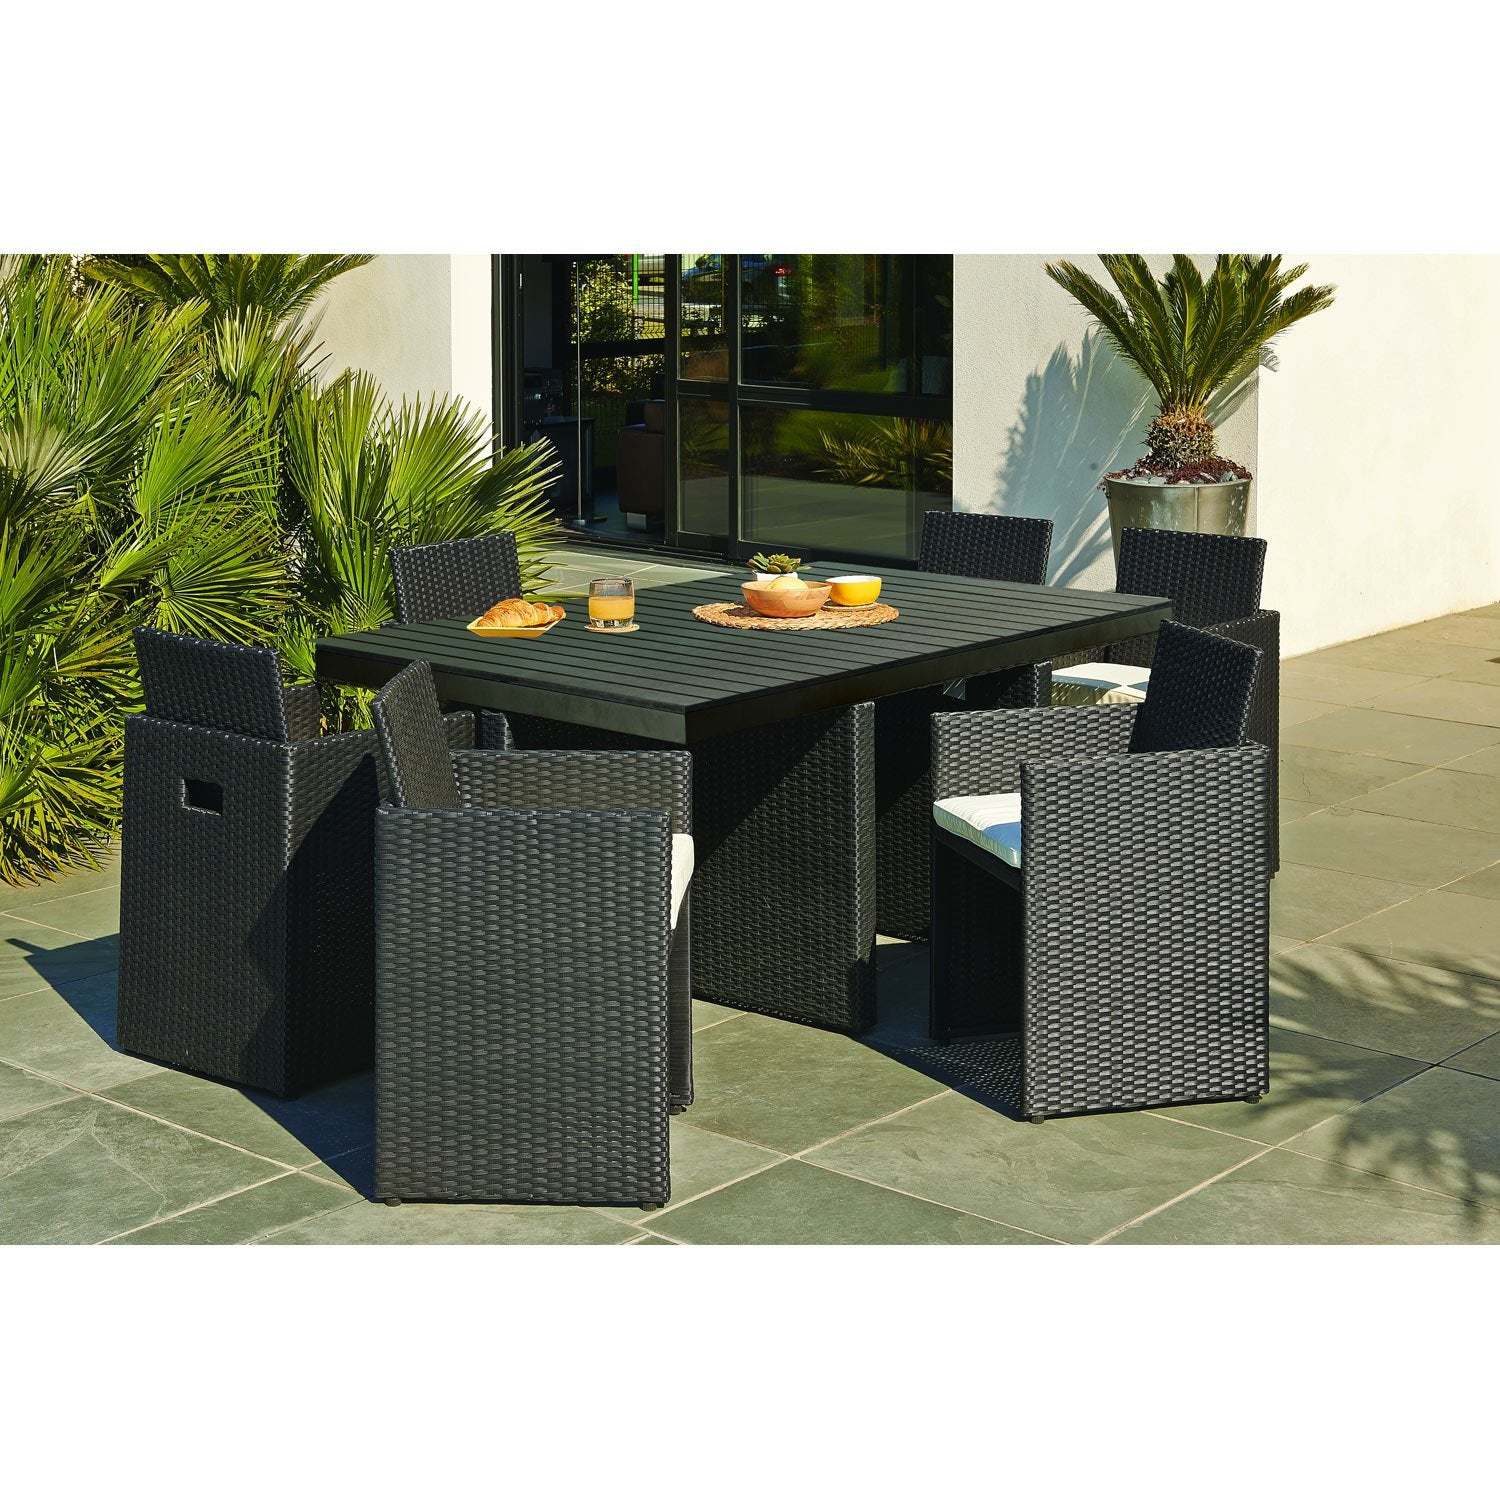 salon de jardin encastrable r sine tress e noir 1 table. Black Bedroom Furniture Sets. Home Design Ideas